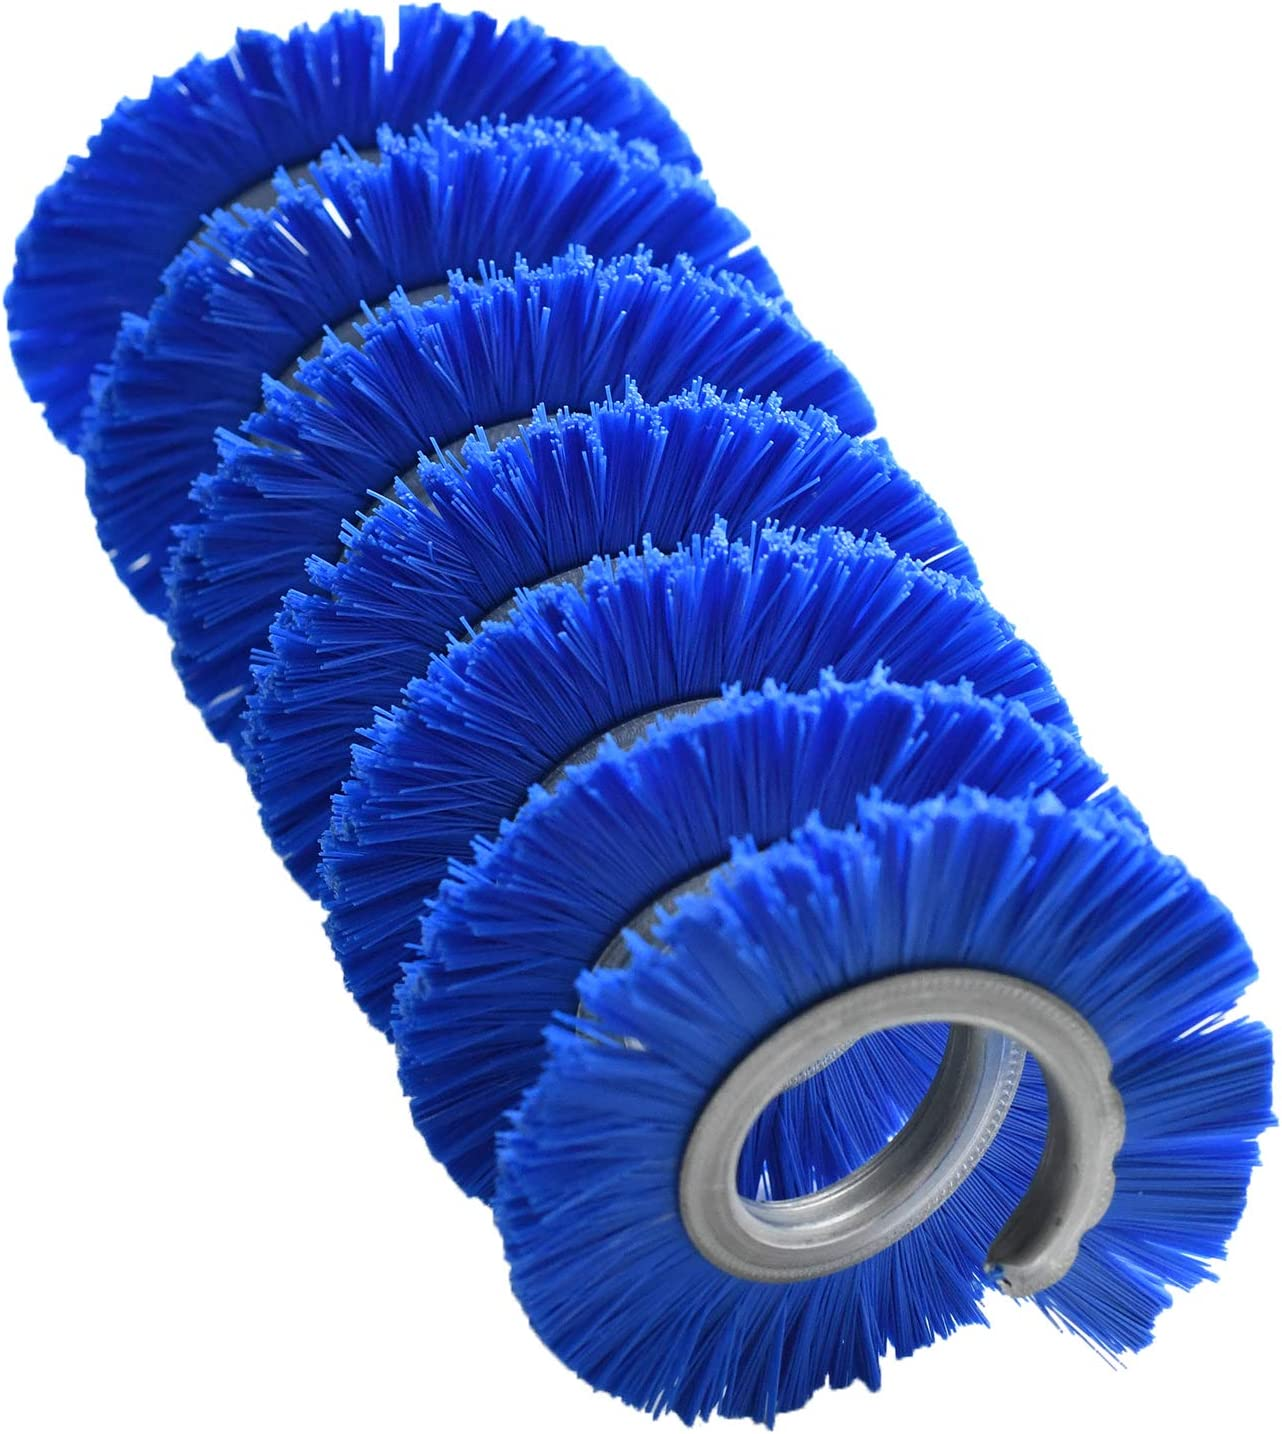 Pool Boy Brush Original Pool Cleaner Attachment - Replacement for Polaris and Pentair Pool Sweeper Systems with Standard Tail Scrubbers, 1 Piece